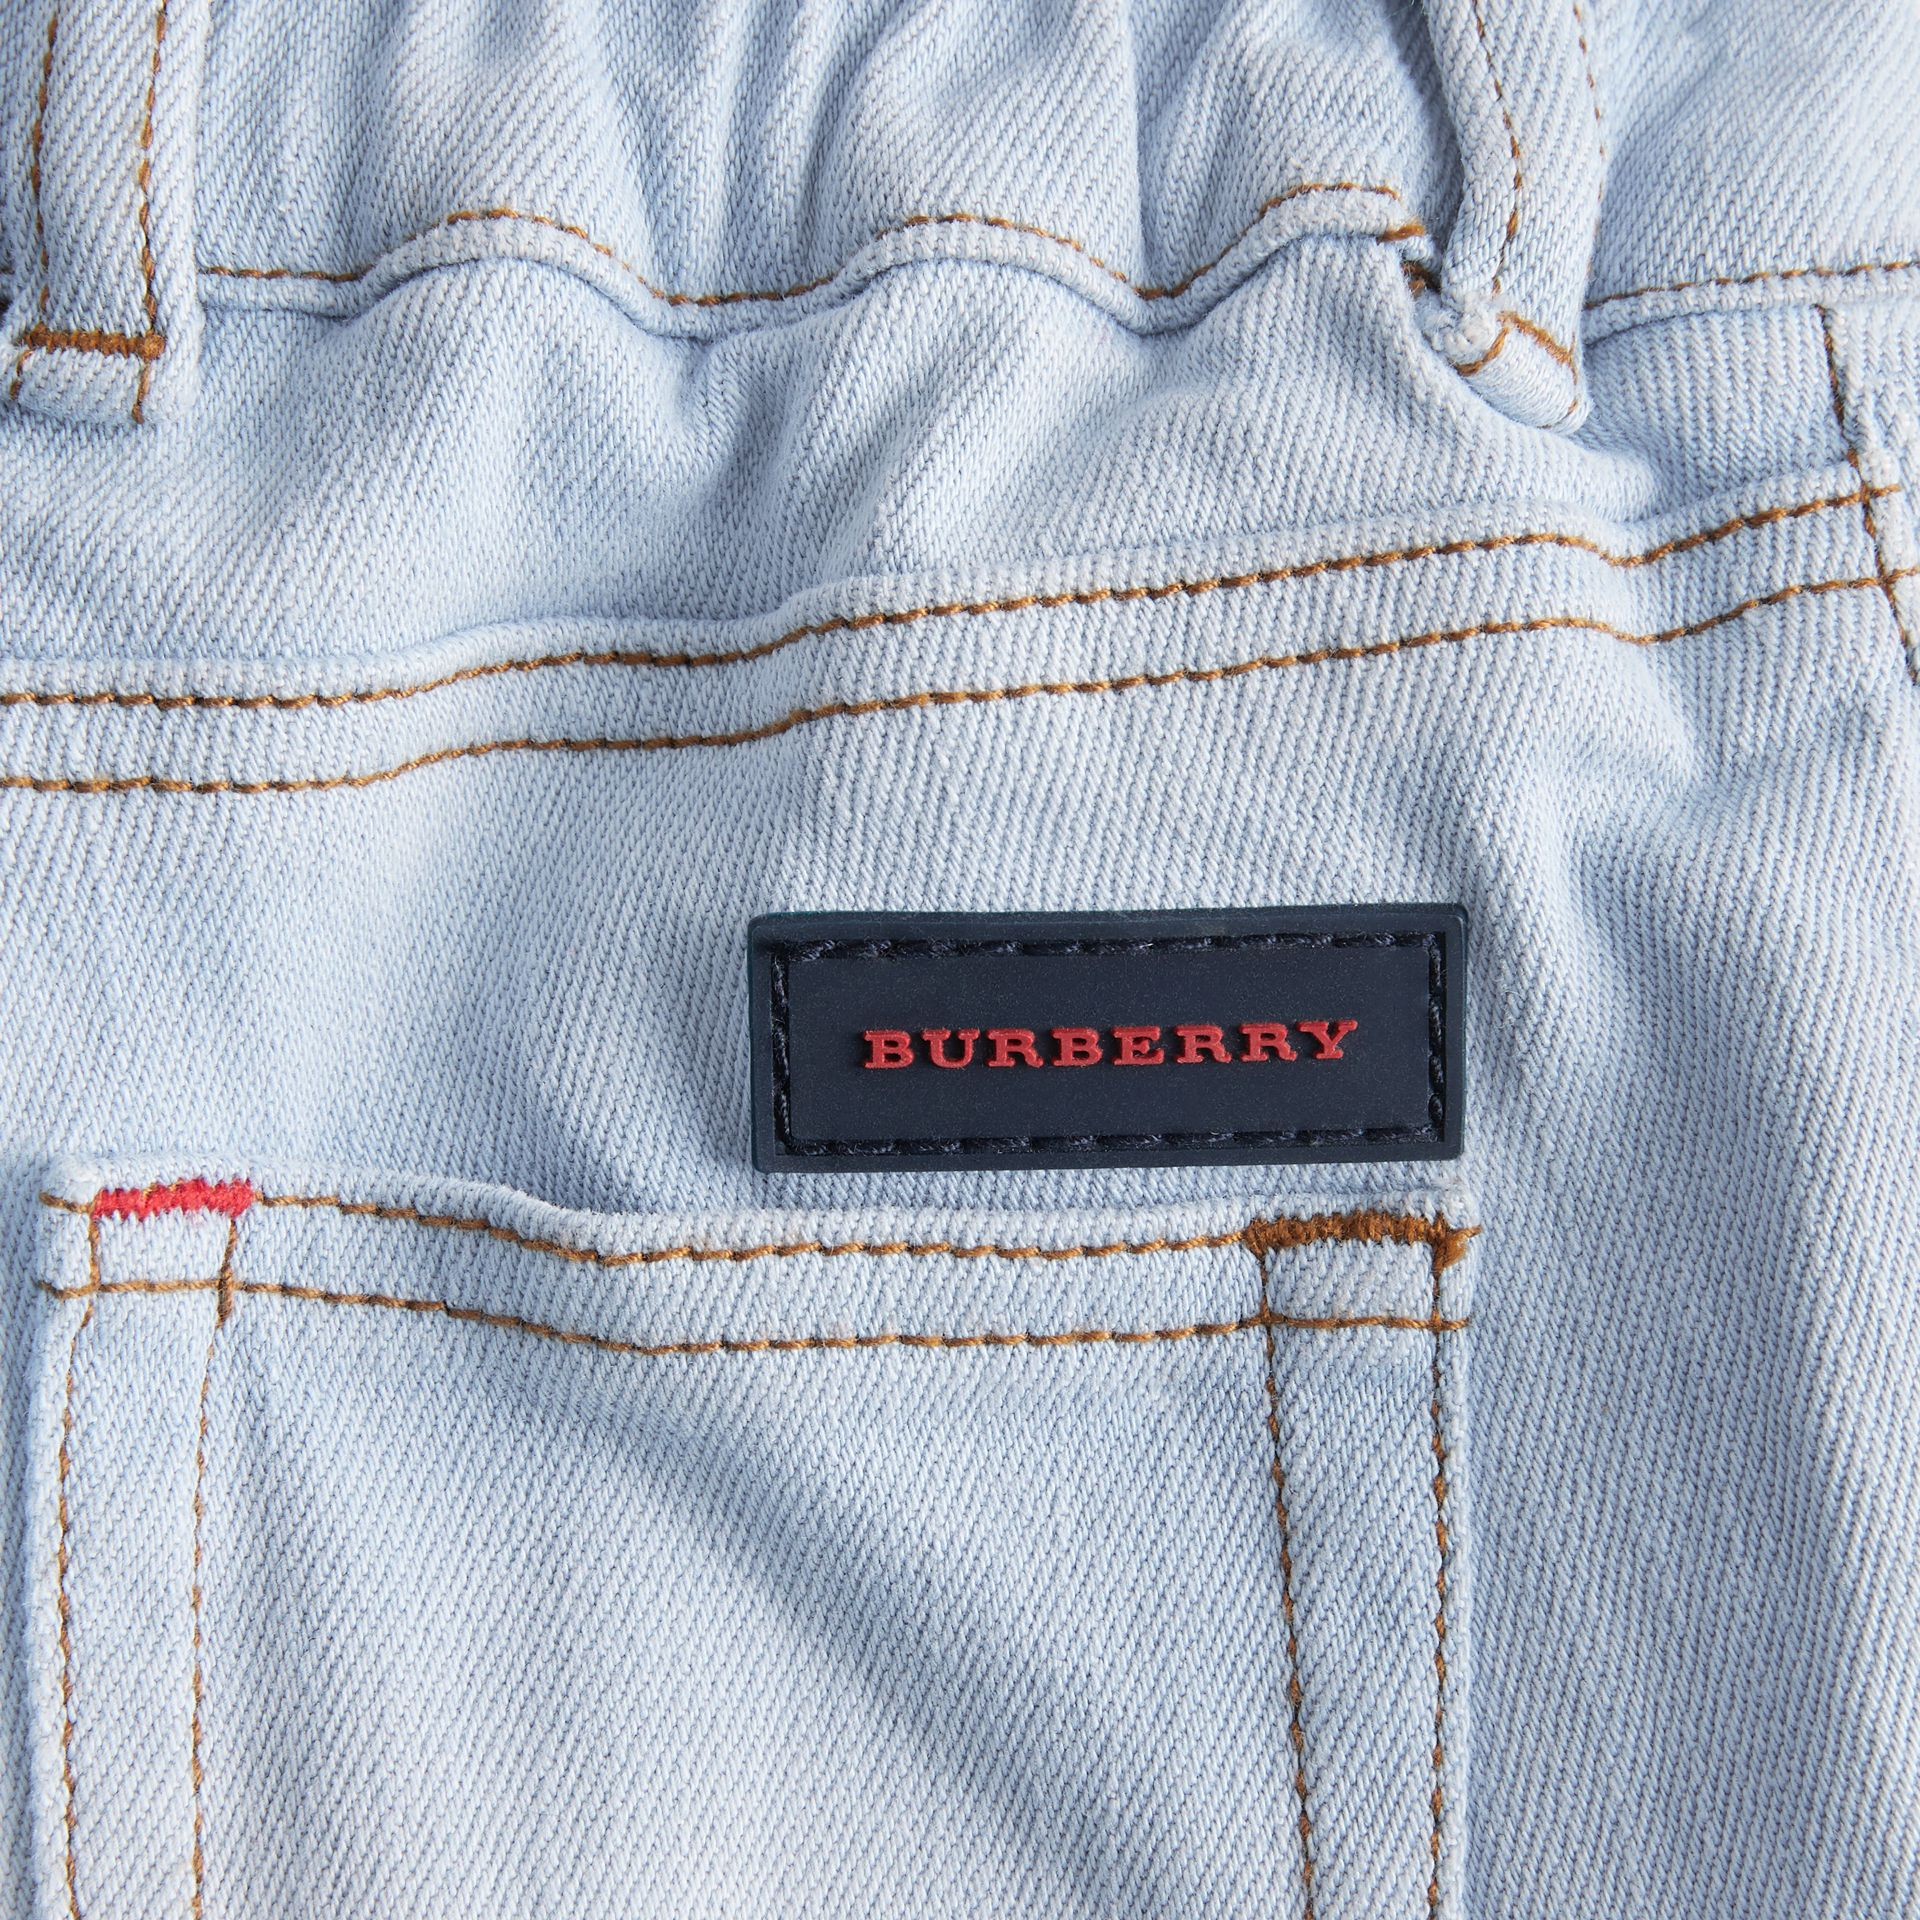 Relaxed Fit Stretch Denim Jeans in Light Blue - Children | Burberry United Kingdom - gallery image 1